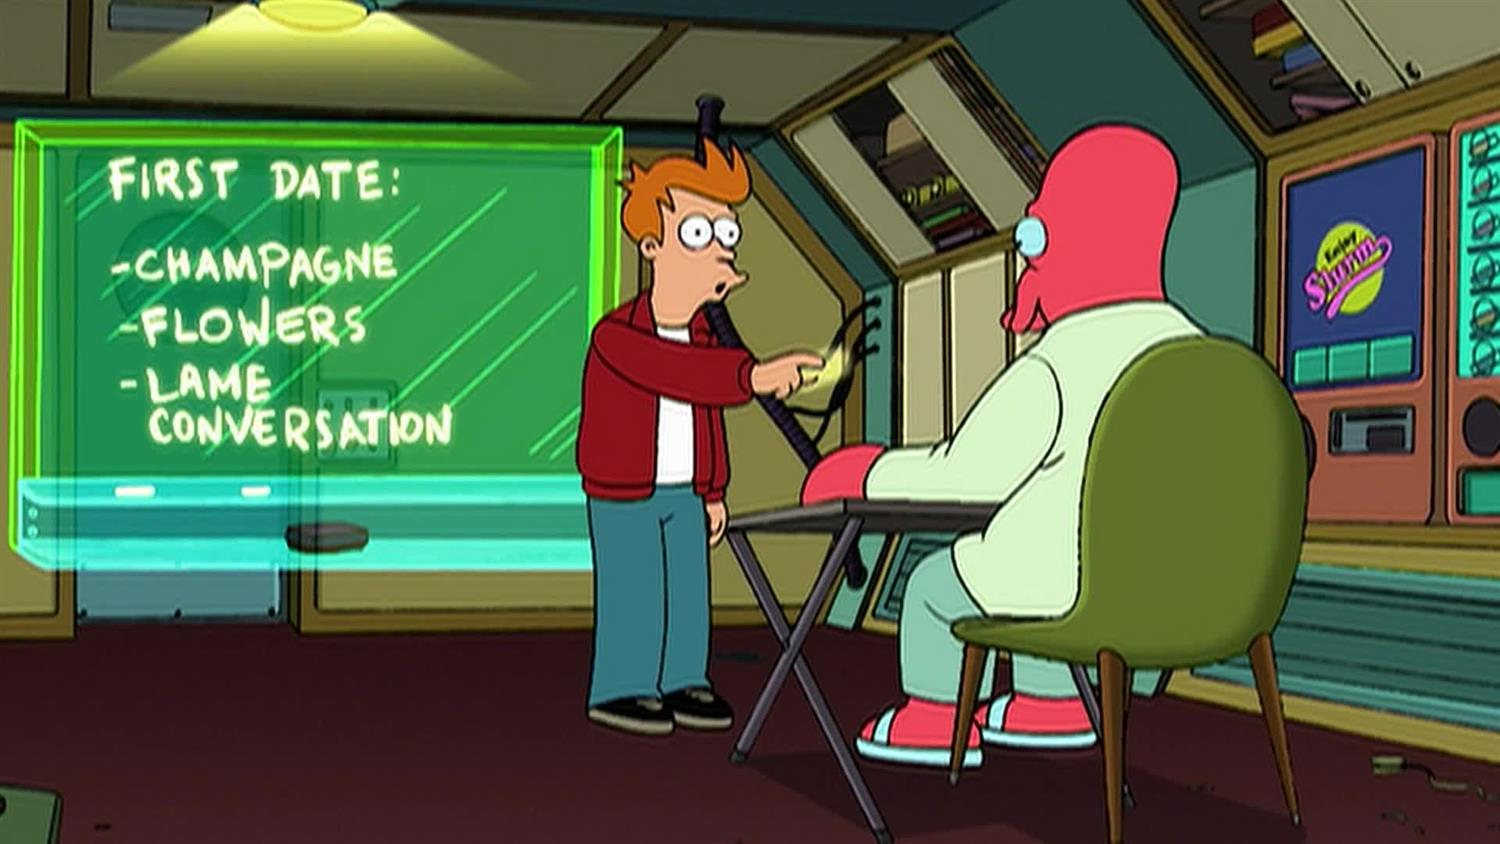 Fry's Dating 101